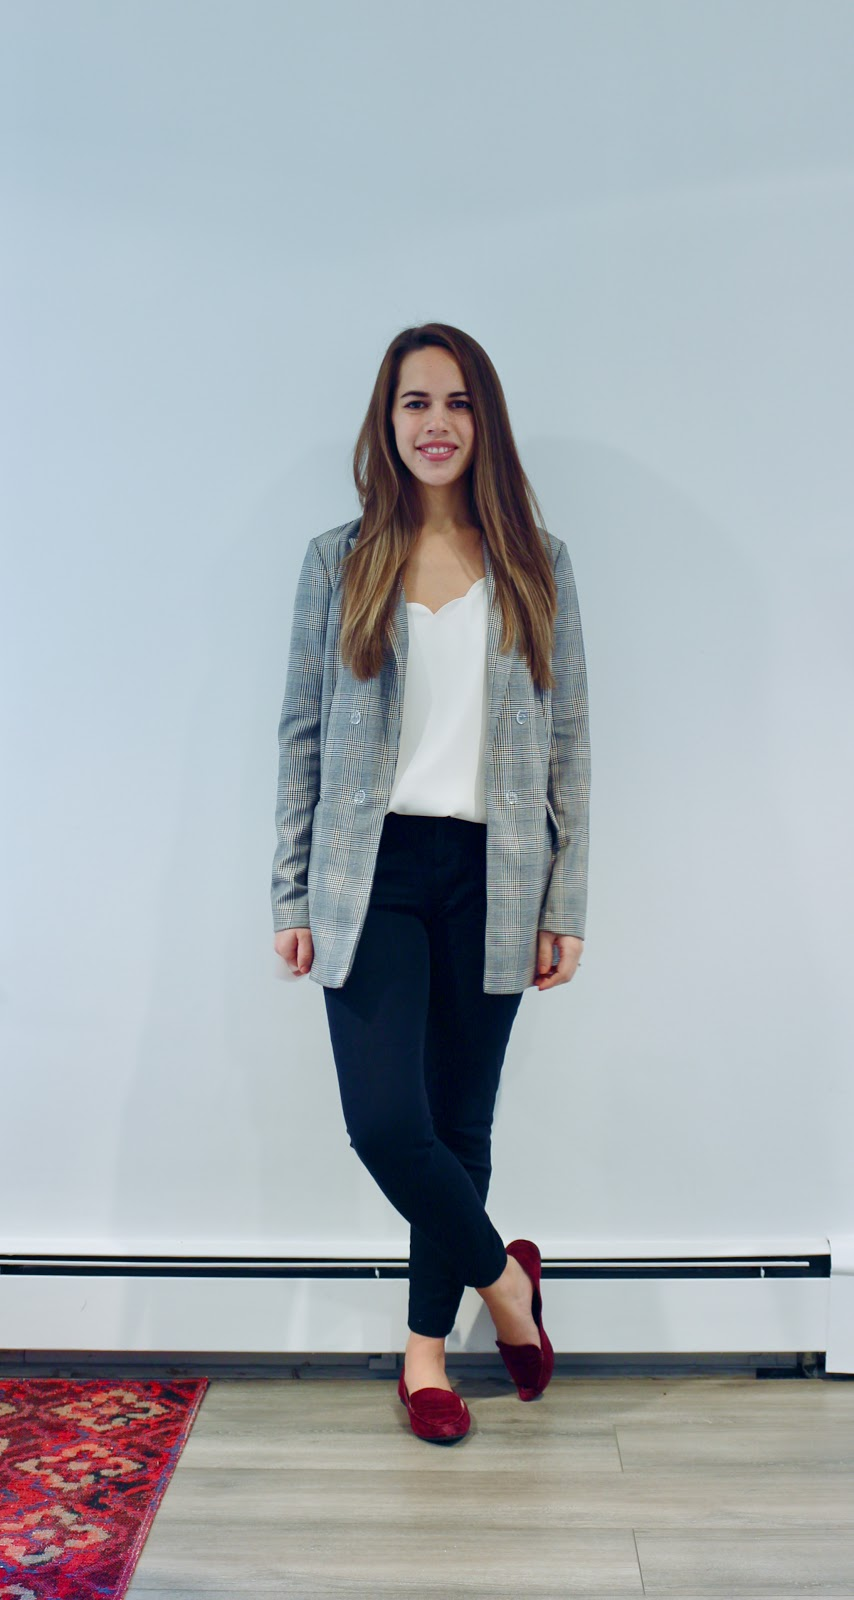 Jules in Flats - Oversized Plaid Blazer (Business Casual Fall Workwear on a Budget)